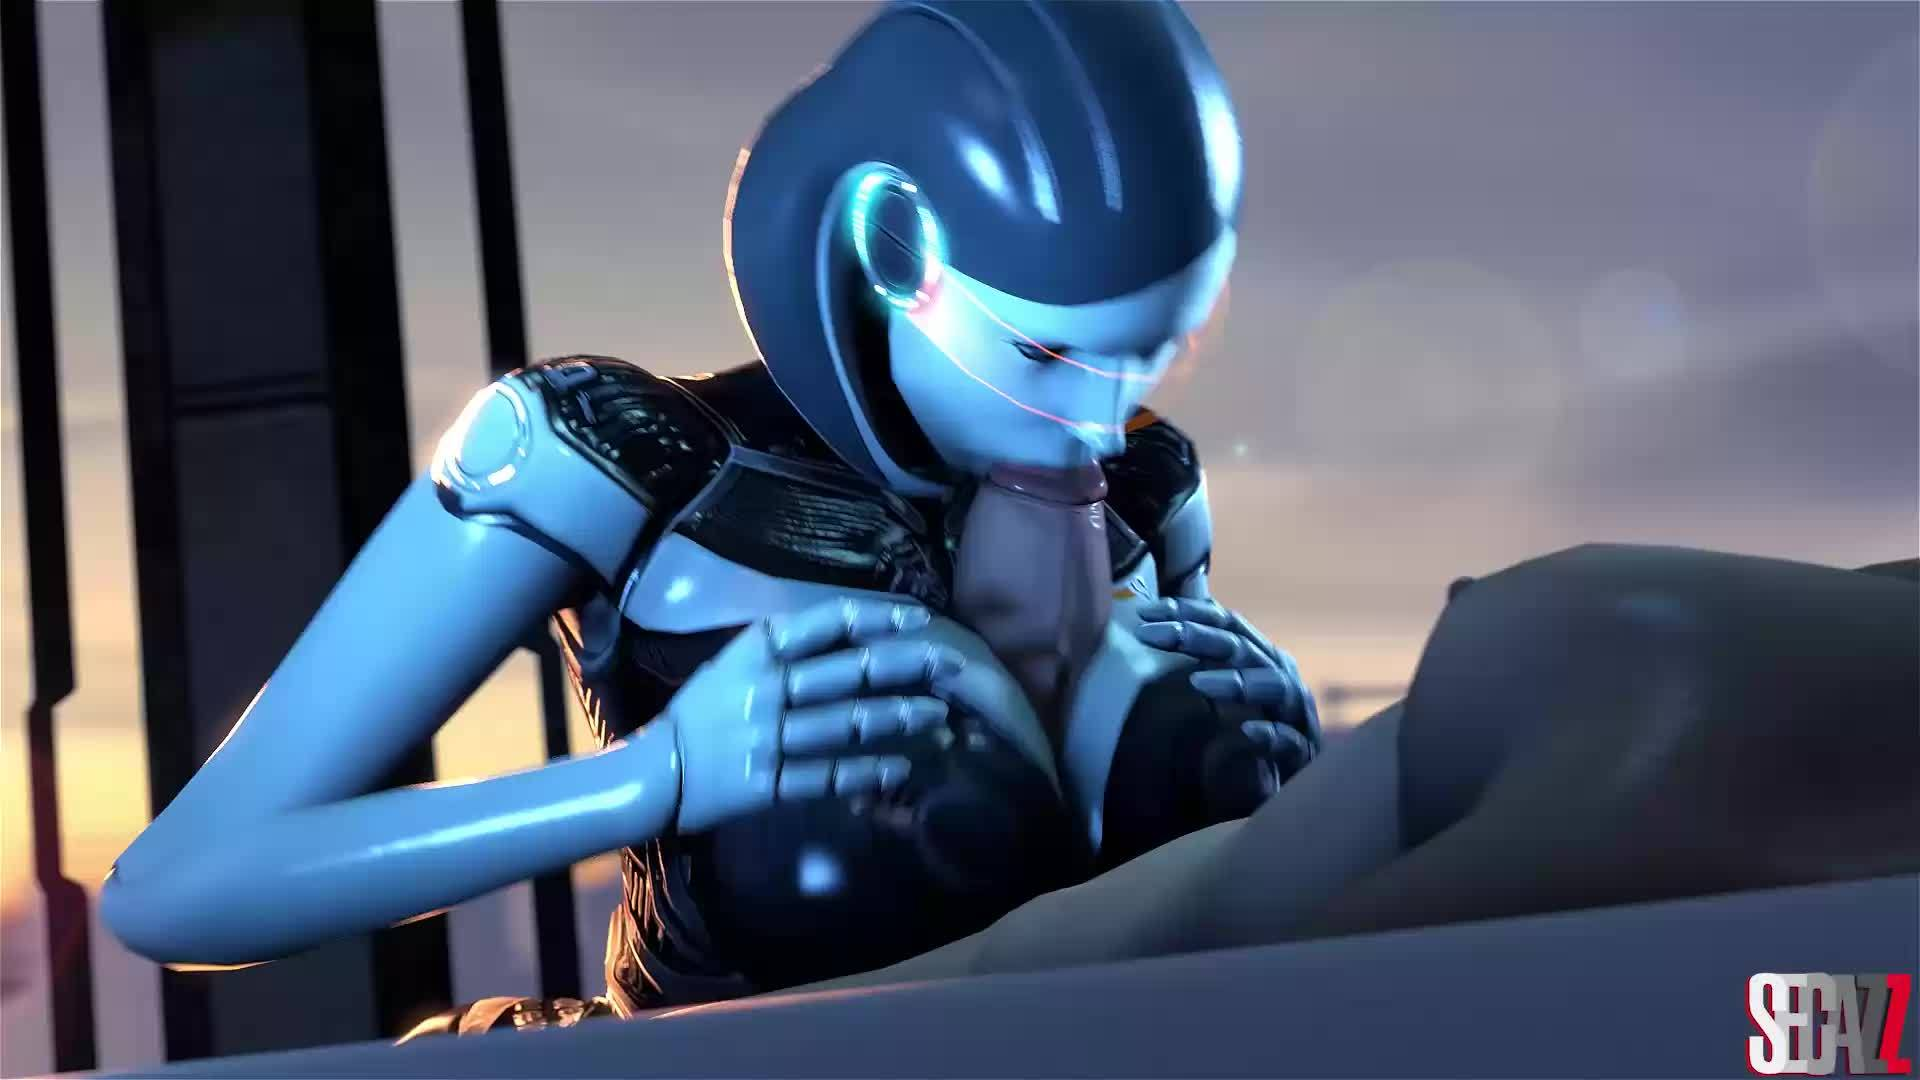 Mass effect 3 edi porn erotic movie